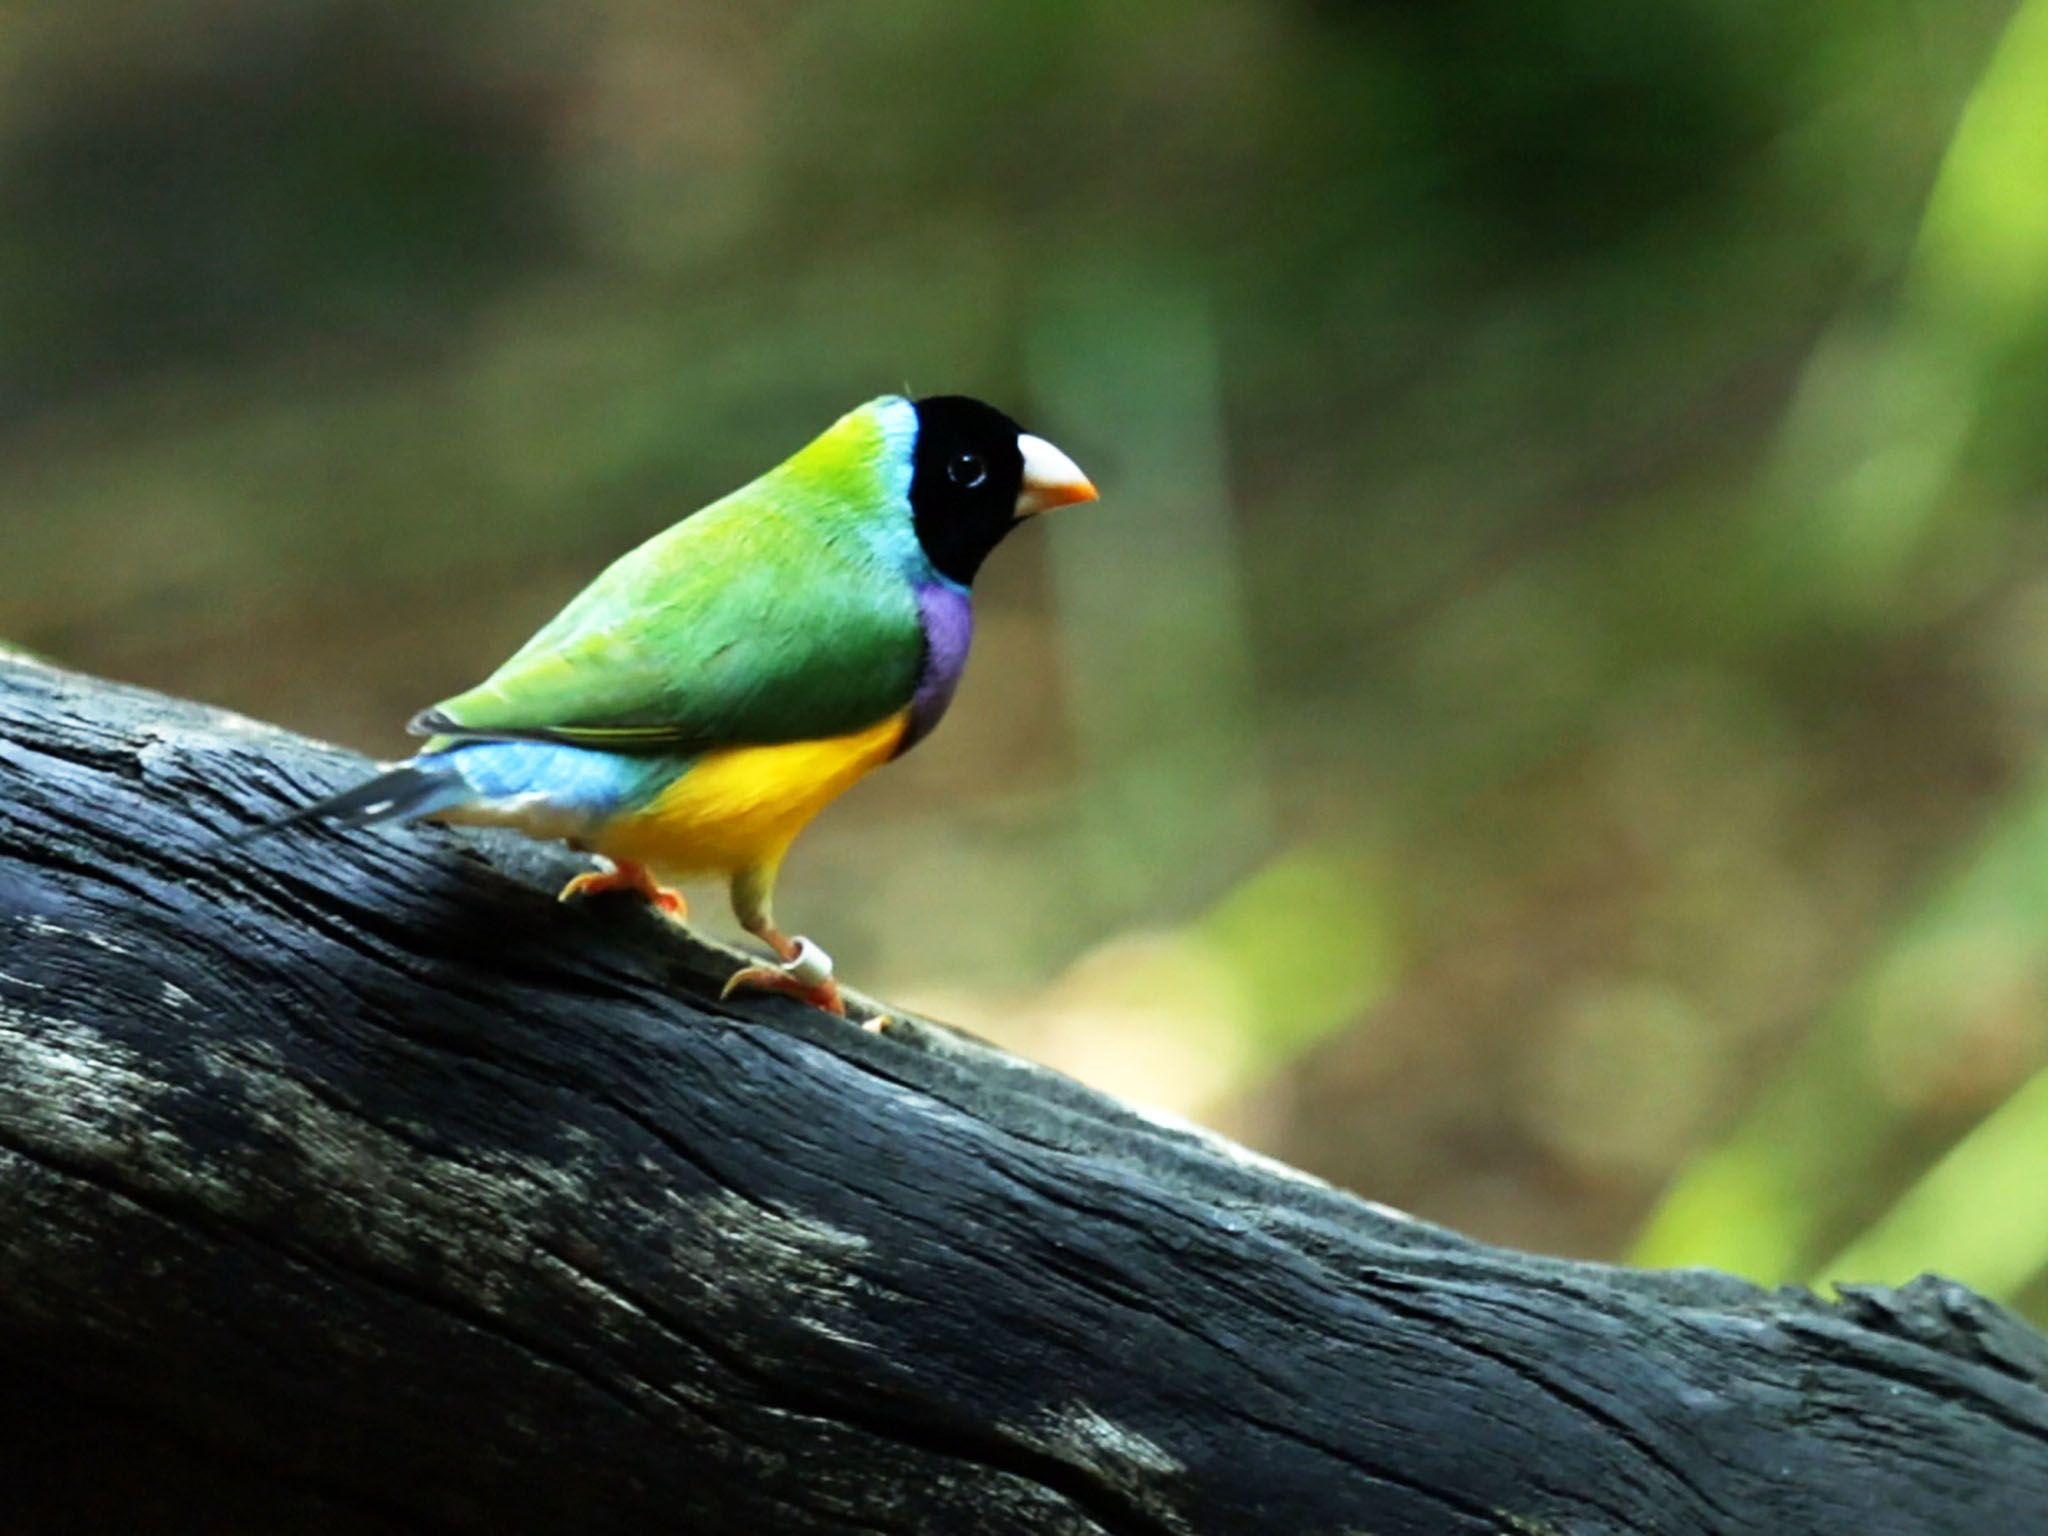 Northern Territory Wildlife Park, Northern Territory Australia: The gouldian finch (Erythrura... [Photo of the day - مارس 2016]